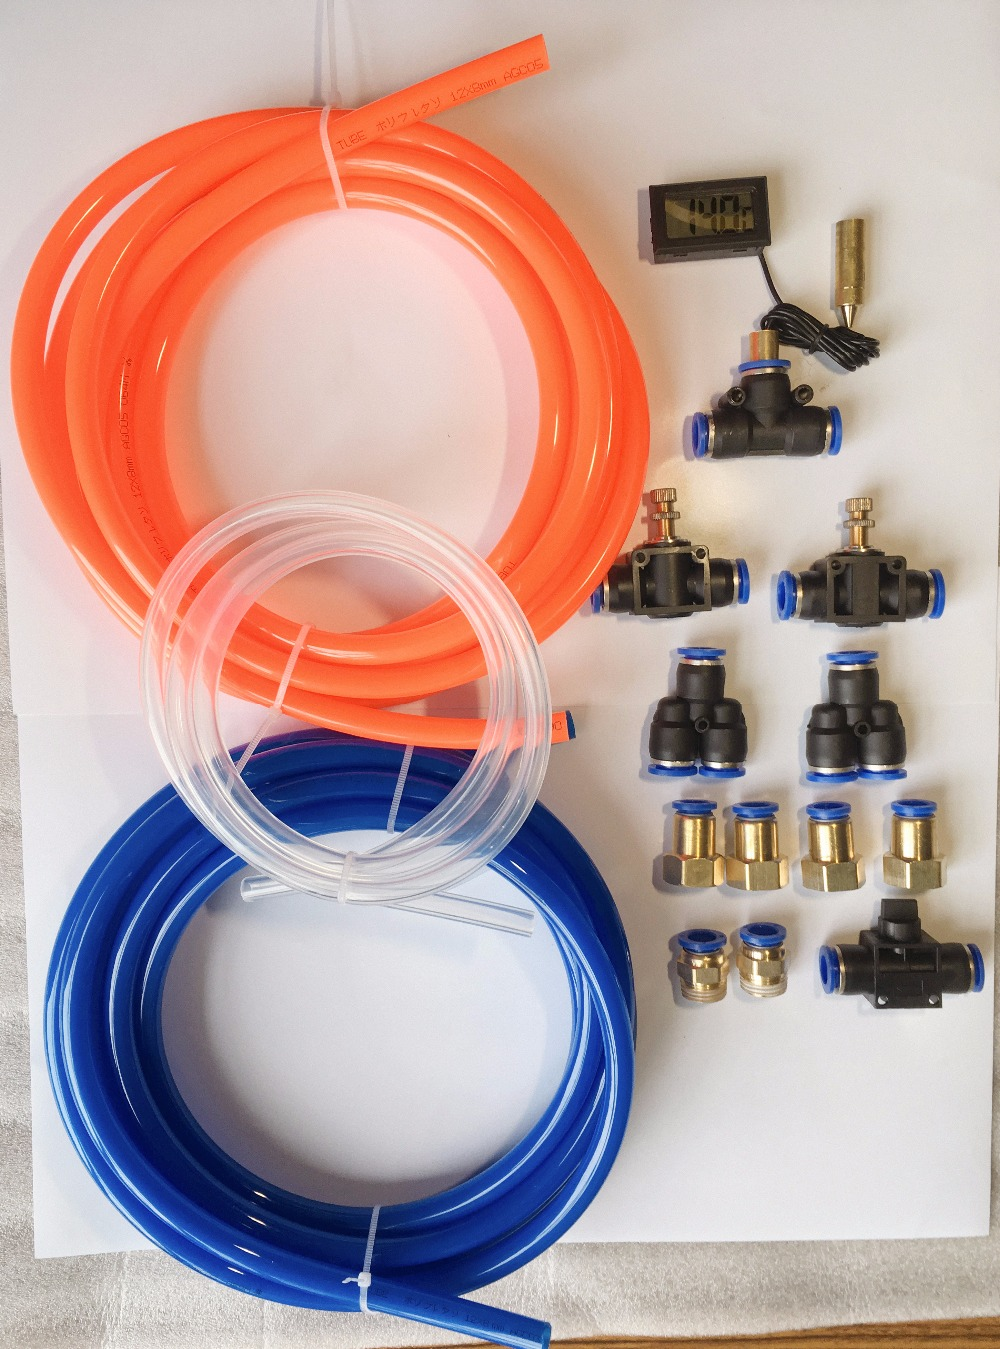 Kit for water cooling system Set 1 . Hose OD12mm кольца для строп hemline 25 мм 2 шт